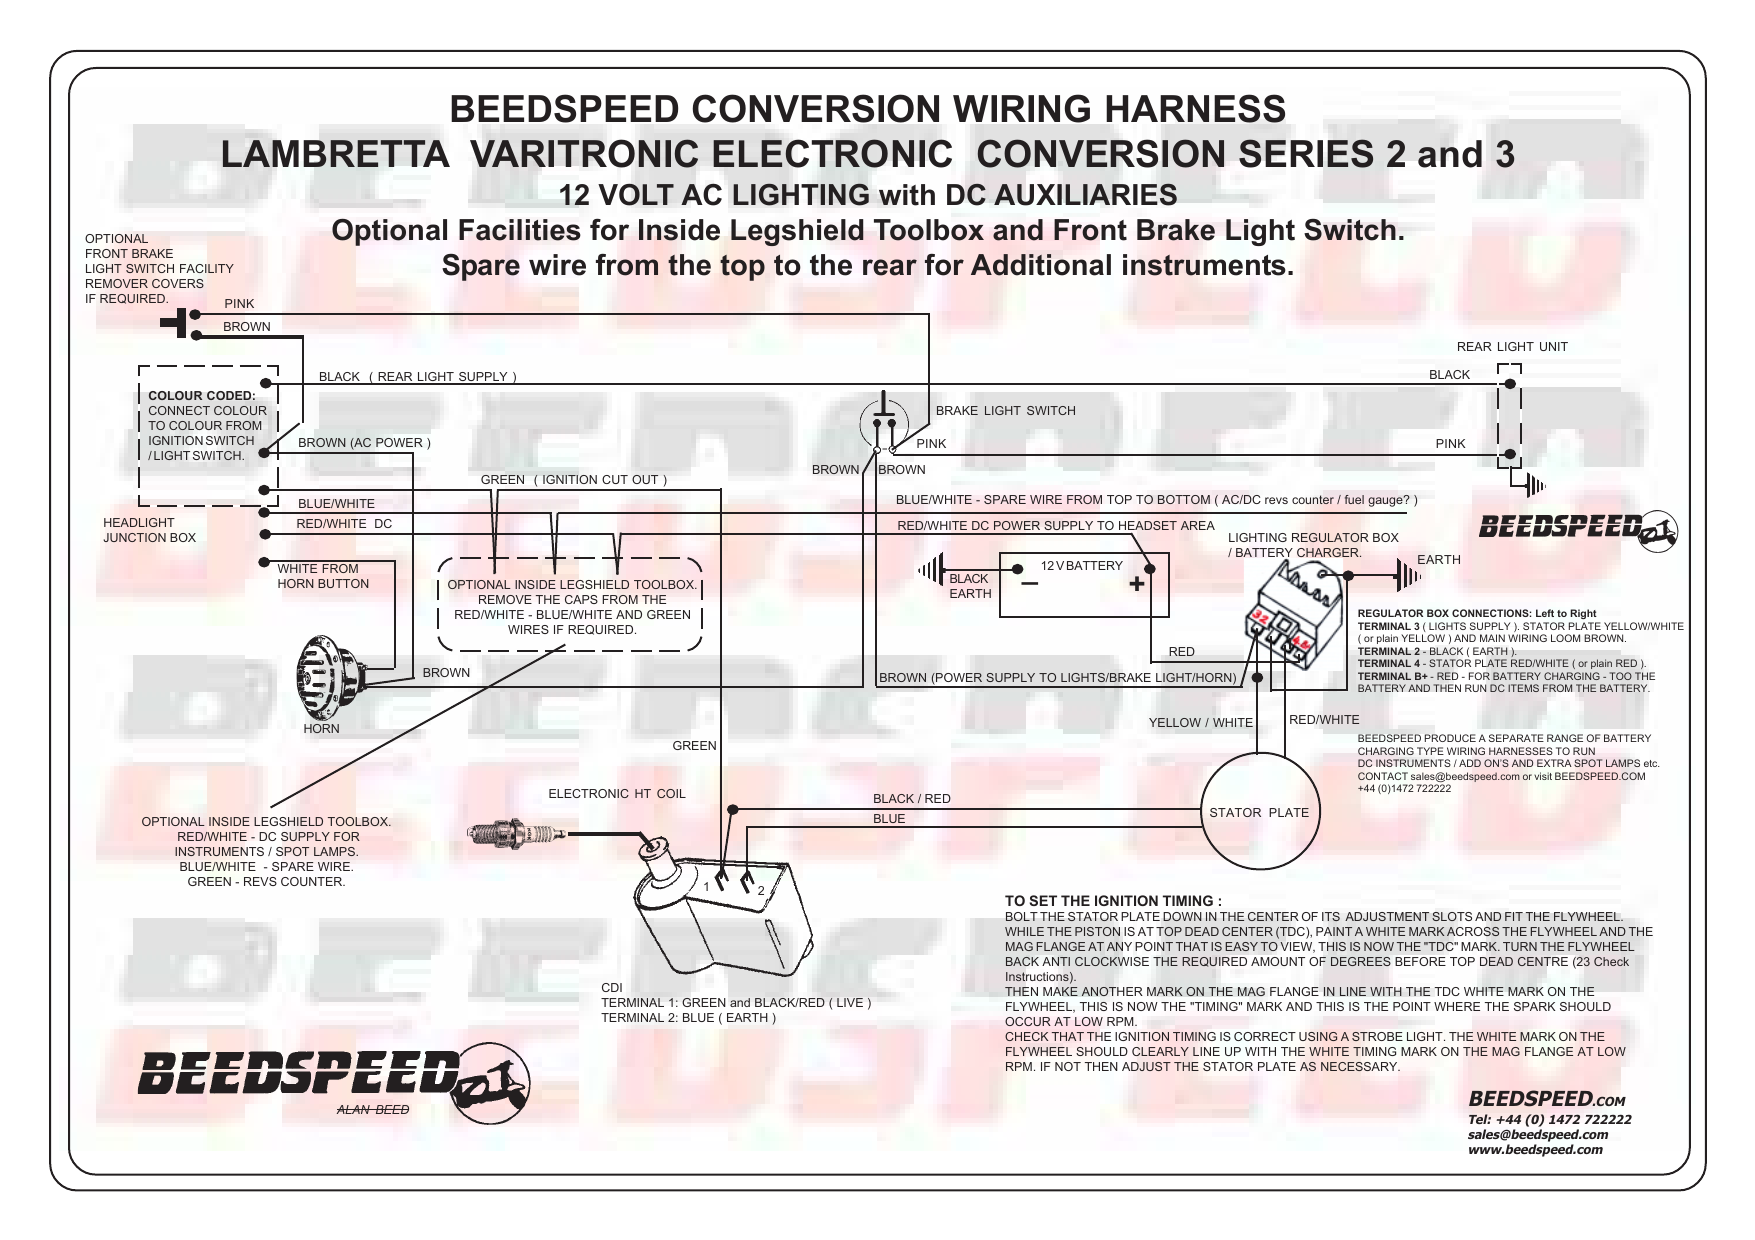 018556260_1 b4df7bce7d31e77b7a555d210f5450ac beedspeed conversion wiring harness lambretta lambretta headset wiring diagram at eliteediting.co